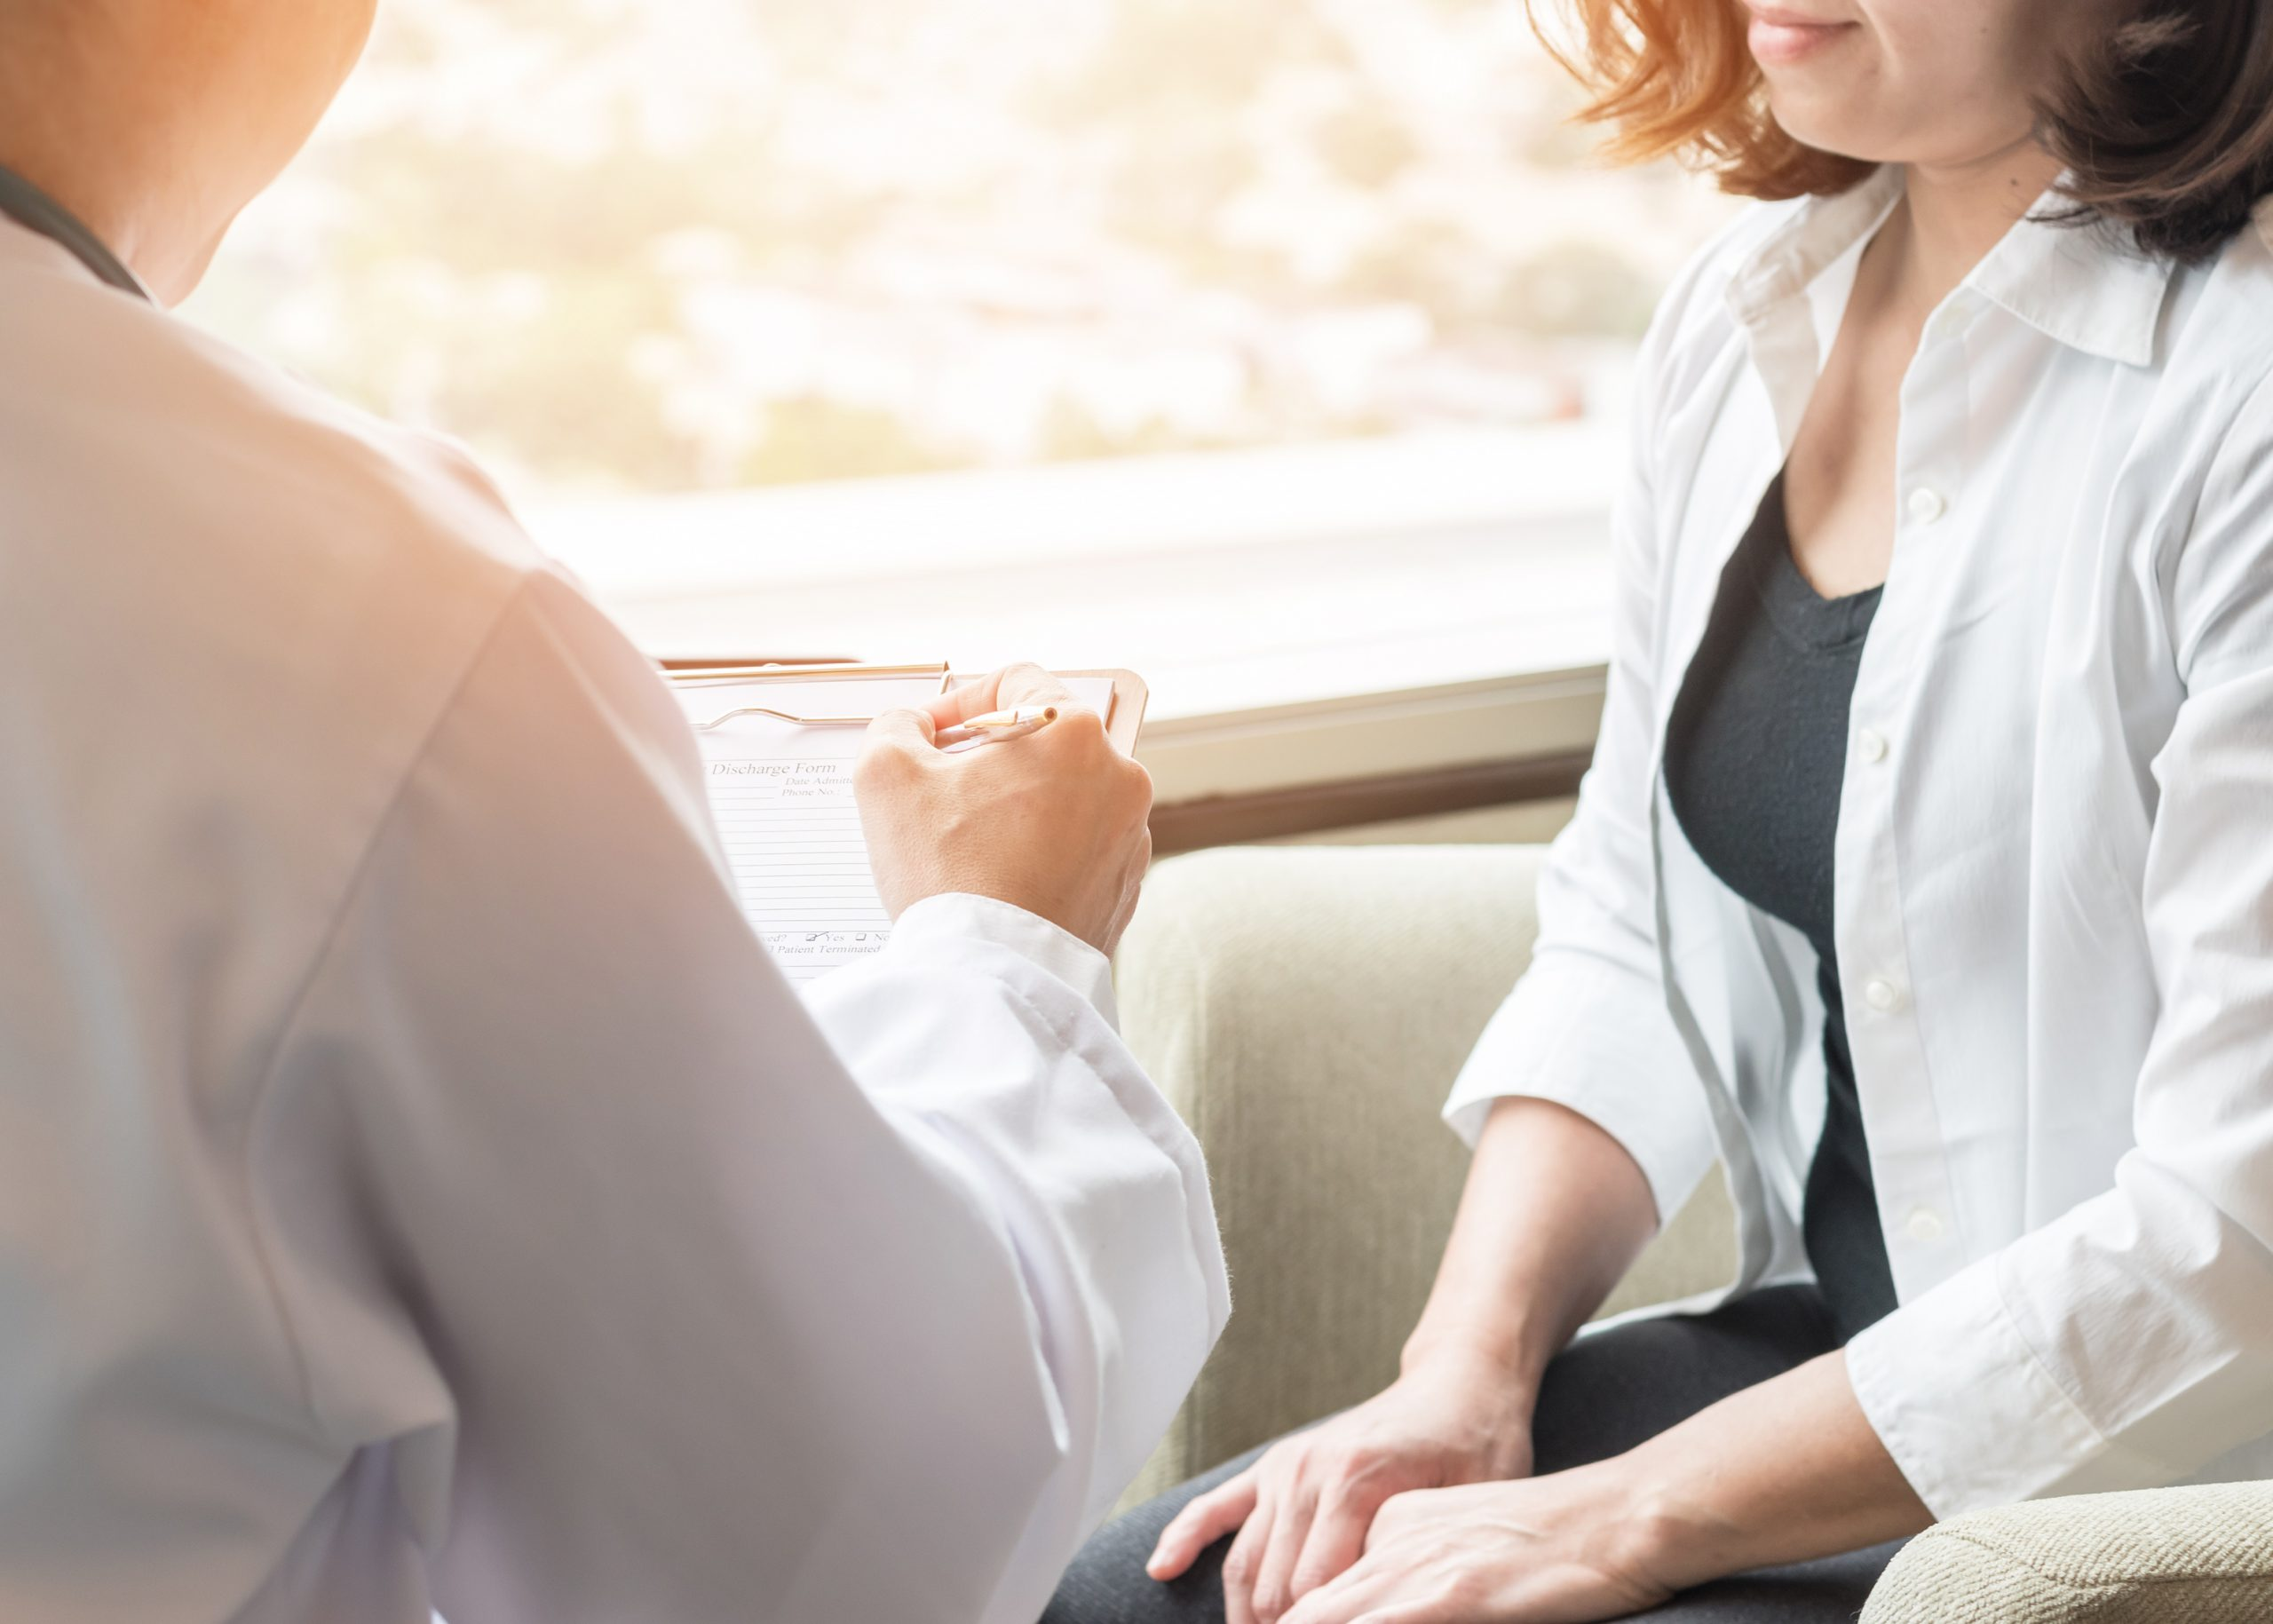 Over the shoulder shot of male physician consulting with a female patient